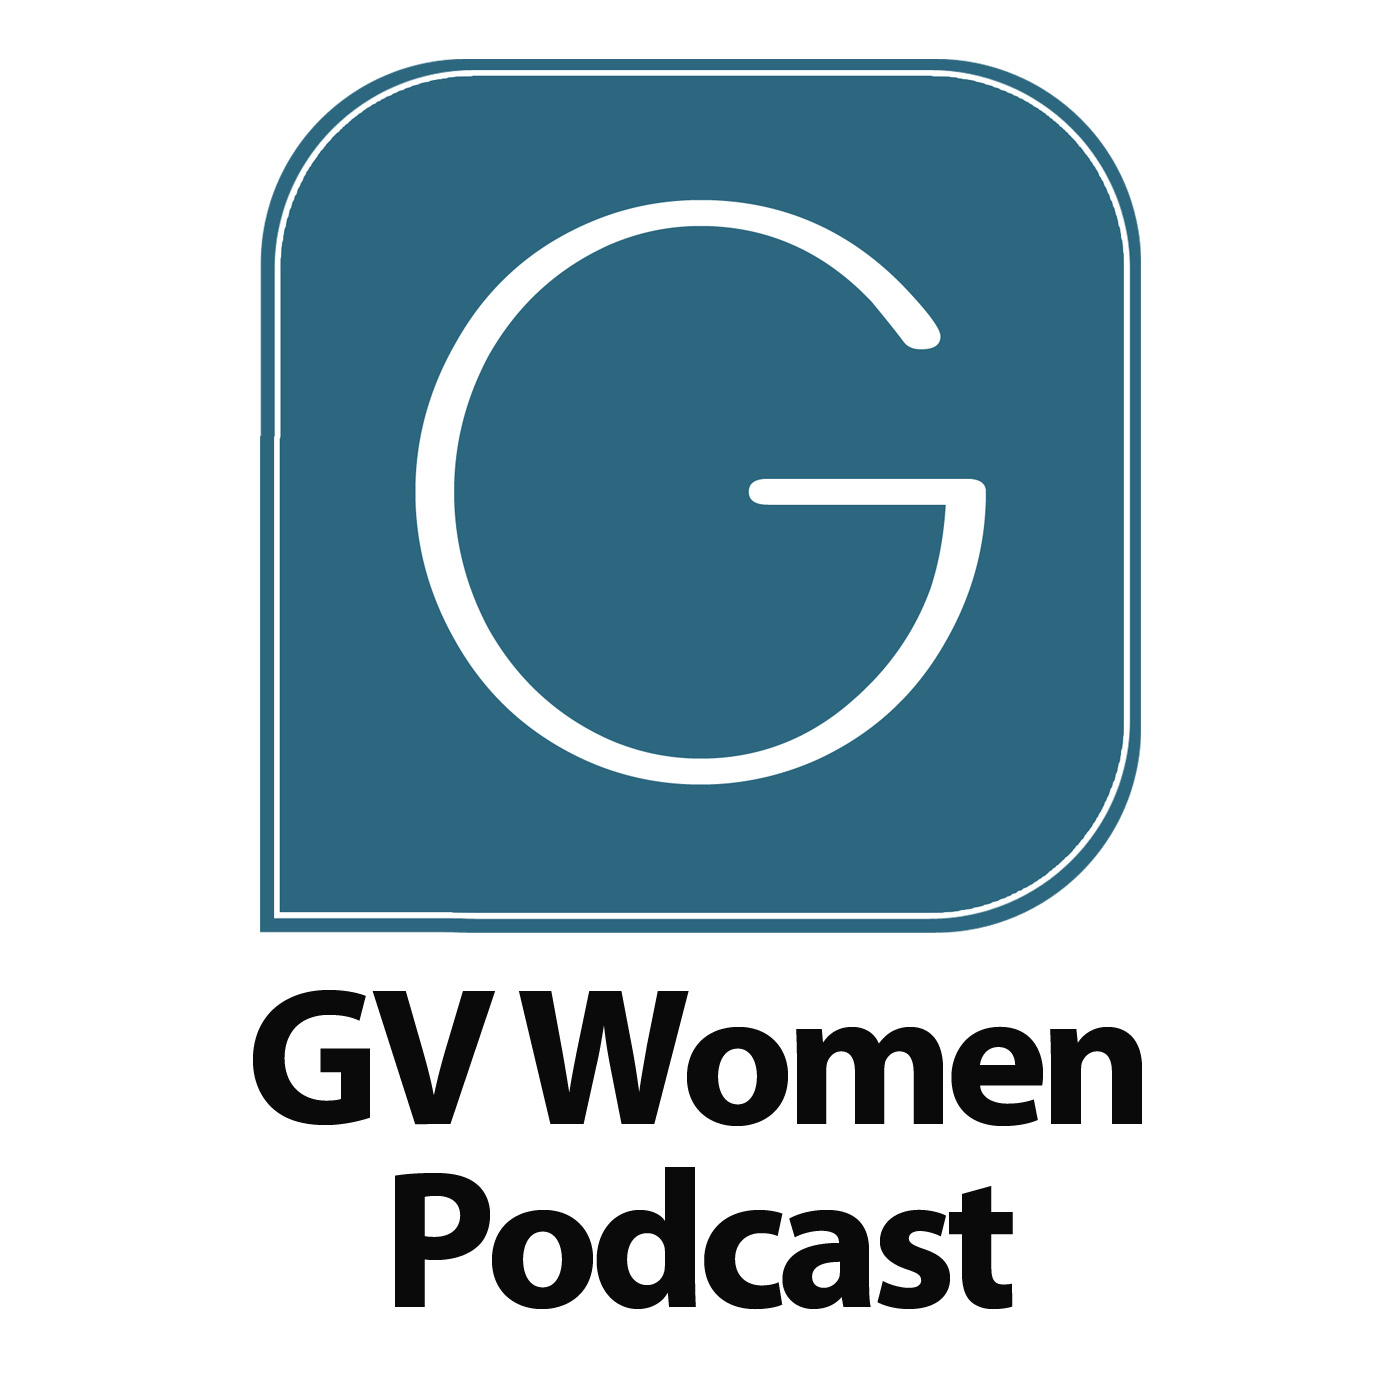 GV Christian Center - GV Women Podcast